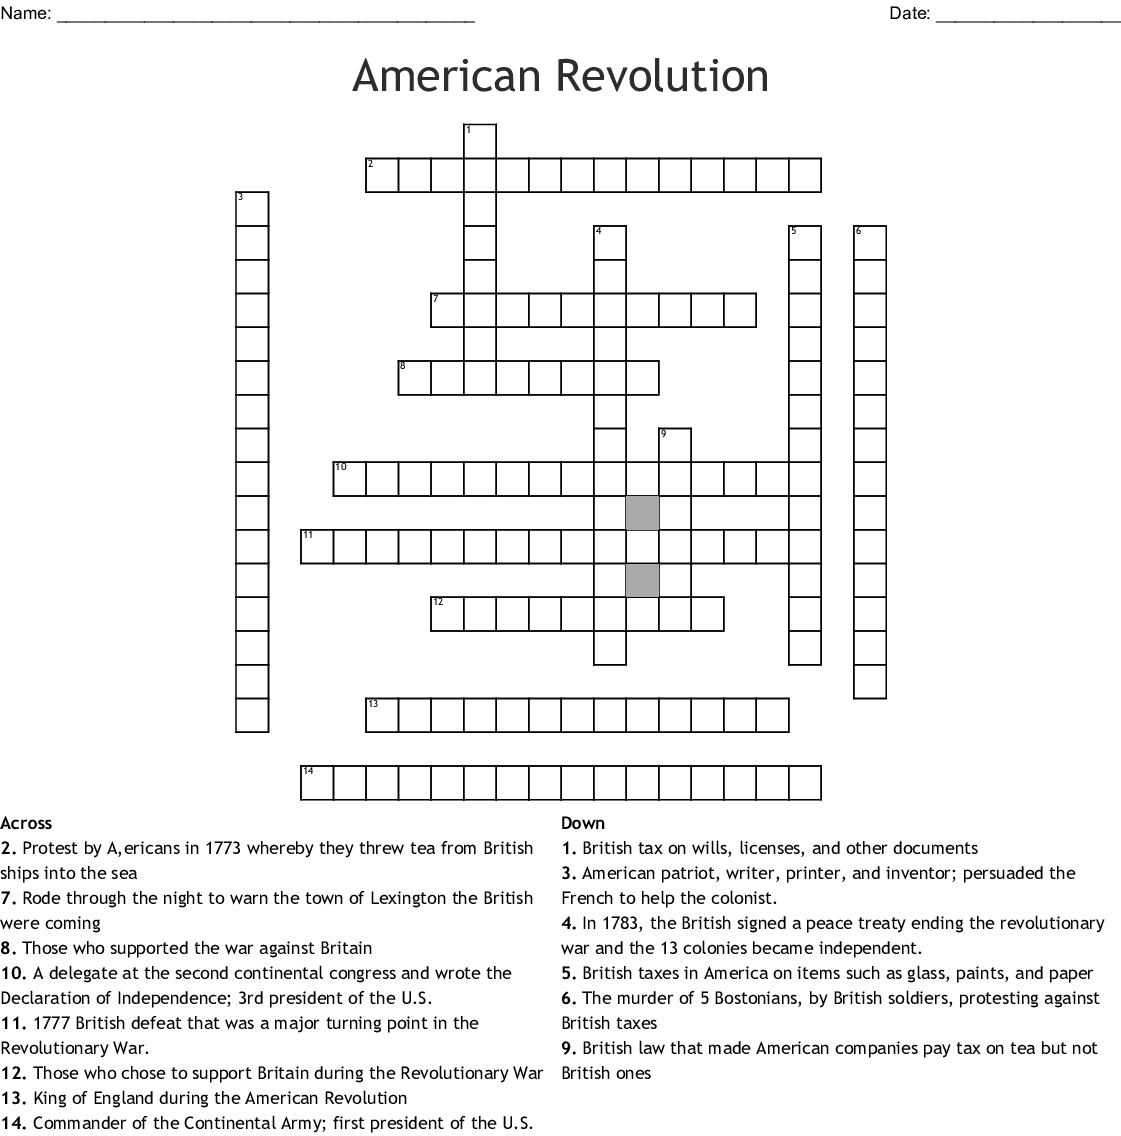 Crossword Usa Studies Weekly 5th Grade Week 4 Answer Key ...